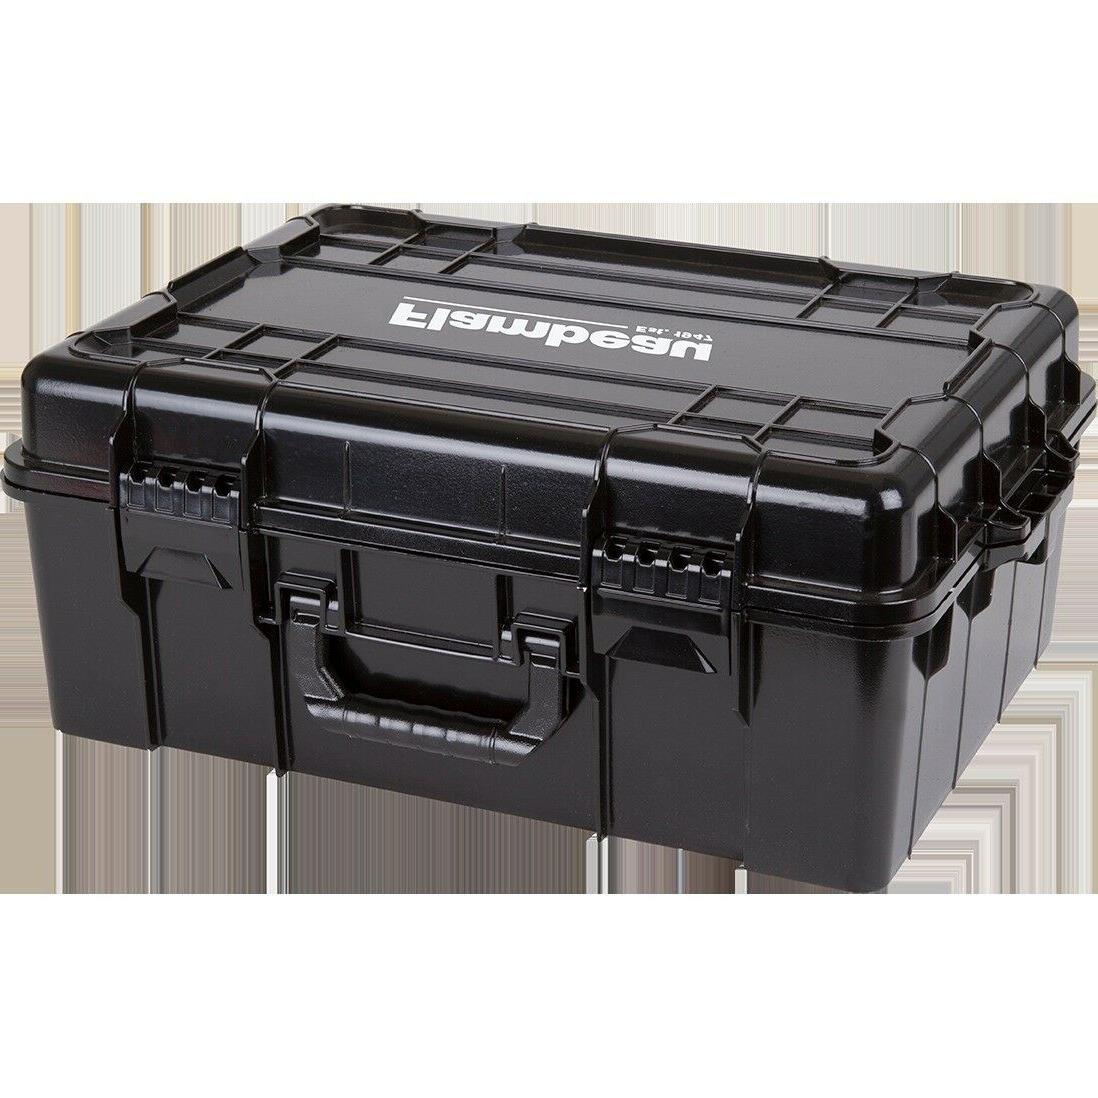 Flambeau Stackhouse Pistol Case 4000NSH